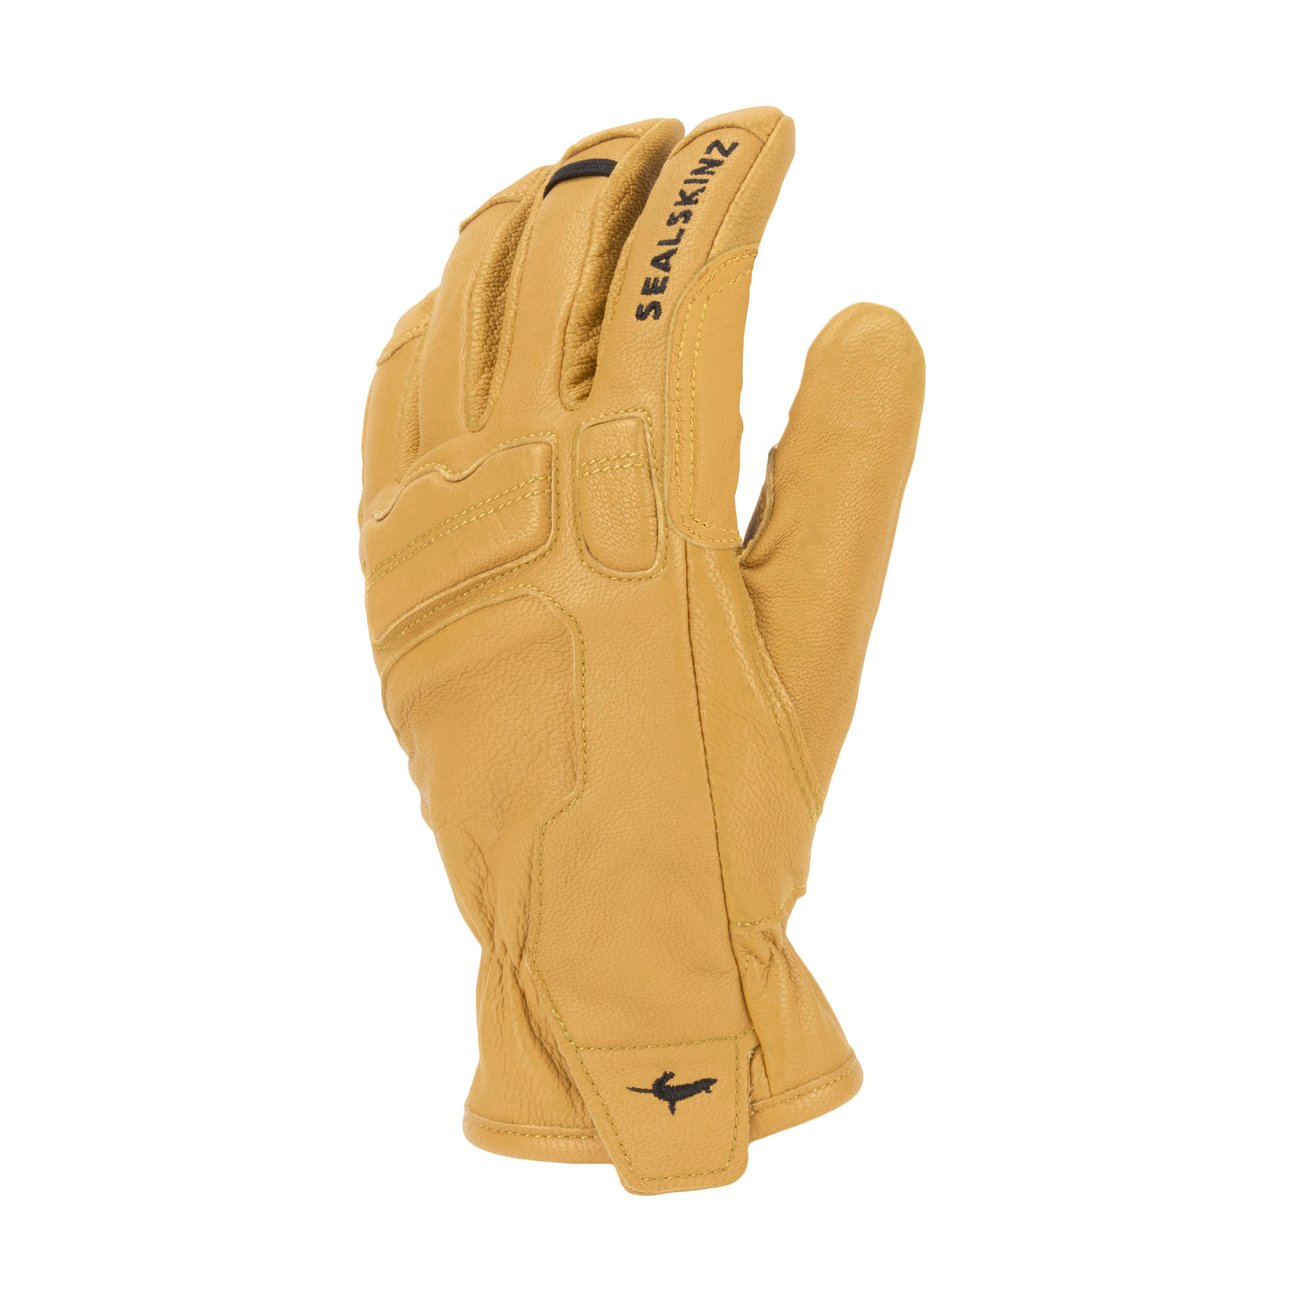 waterproof-cold-weather-work-glove-with-fusion-control™